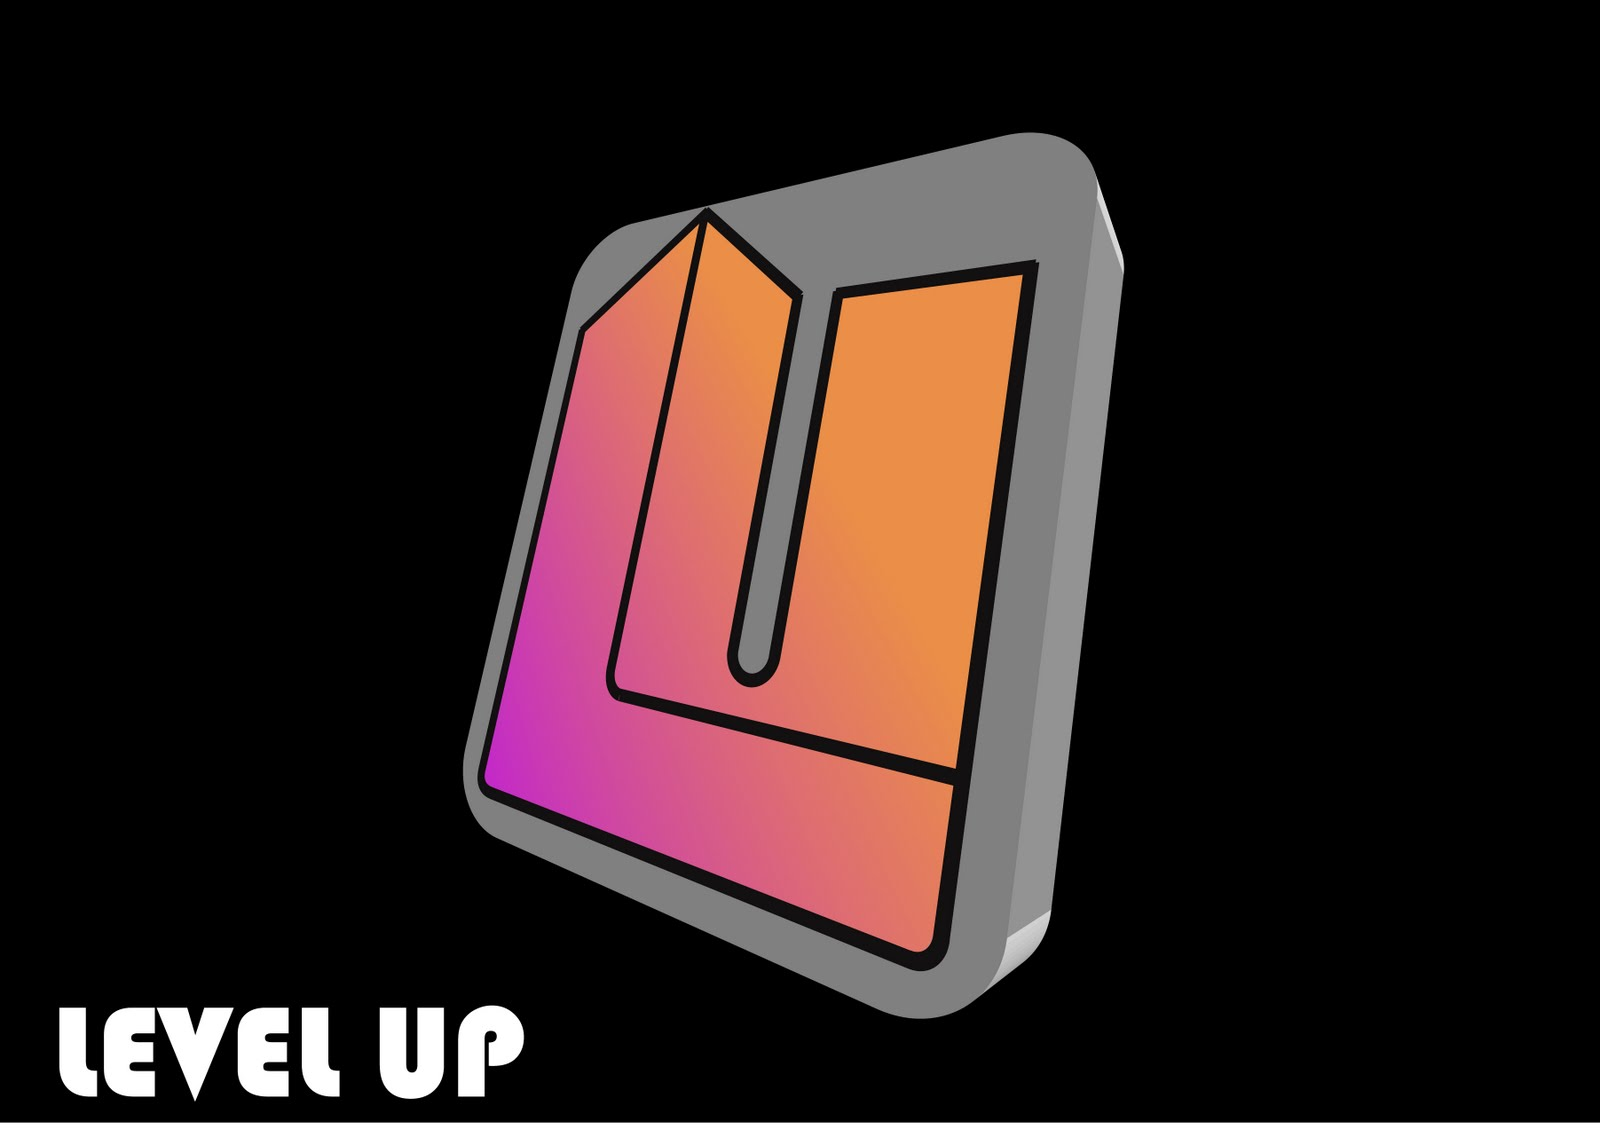 fatline animations level up logo